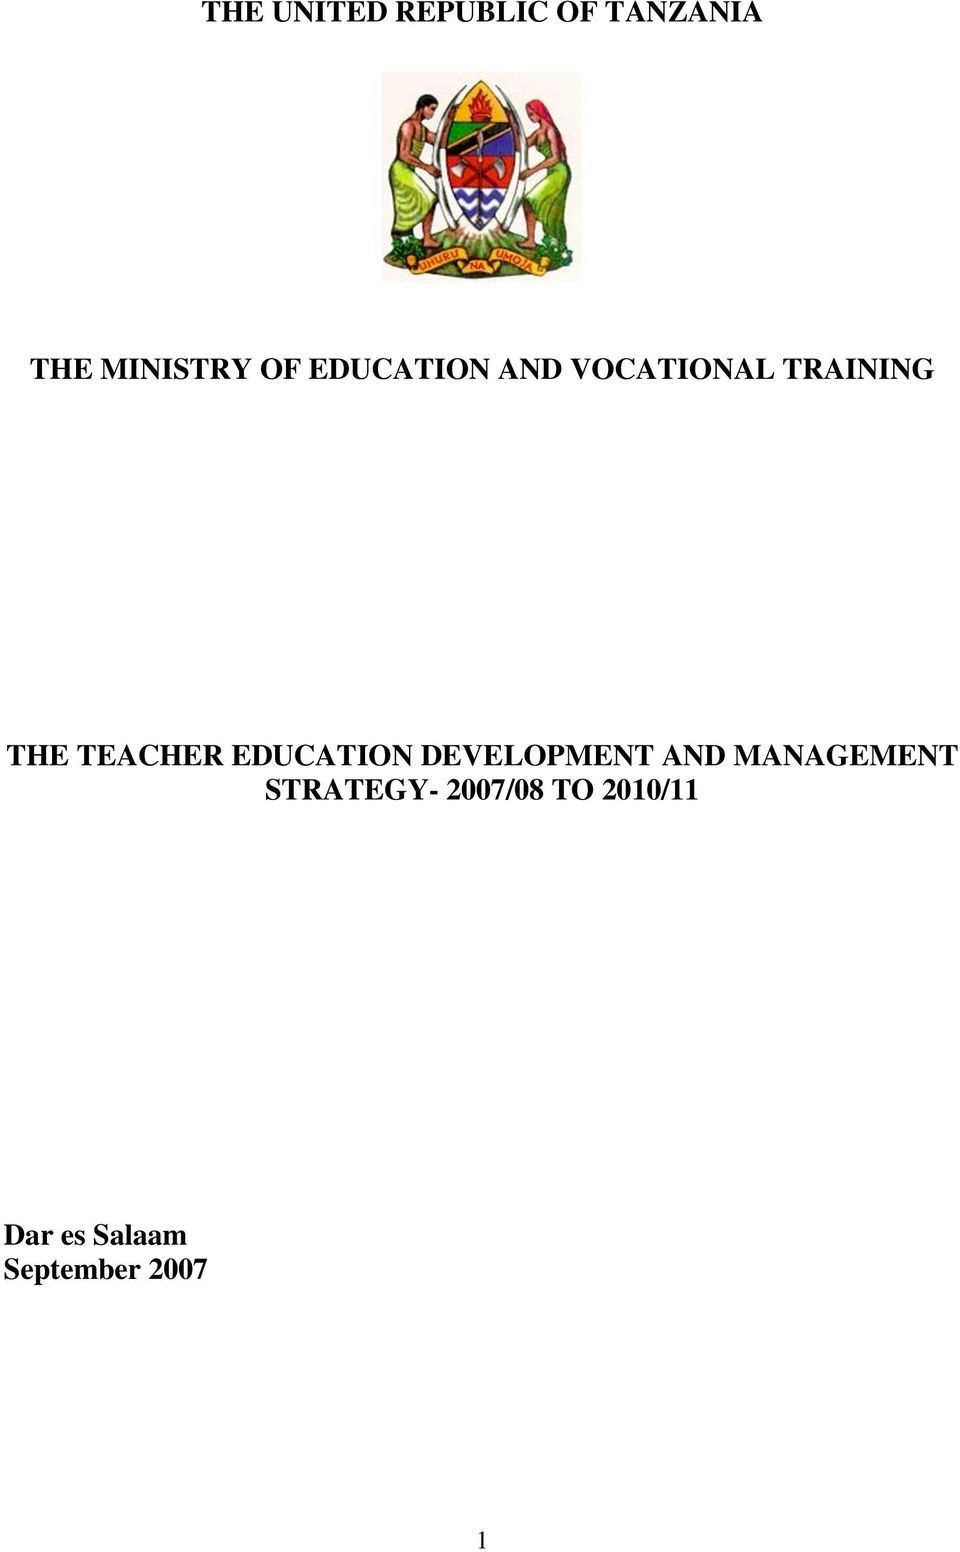 EDUCATION DEVELOPMENT AND MANAGEMENT STRATEGY-